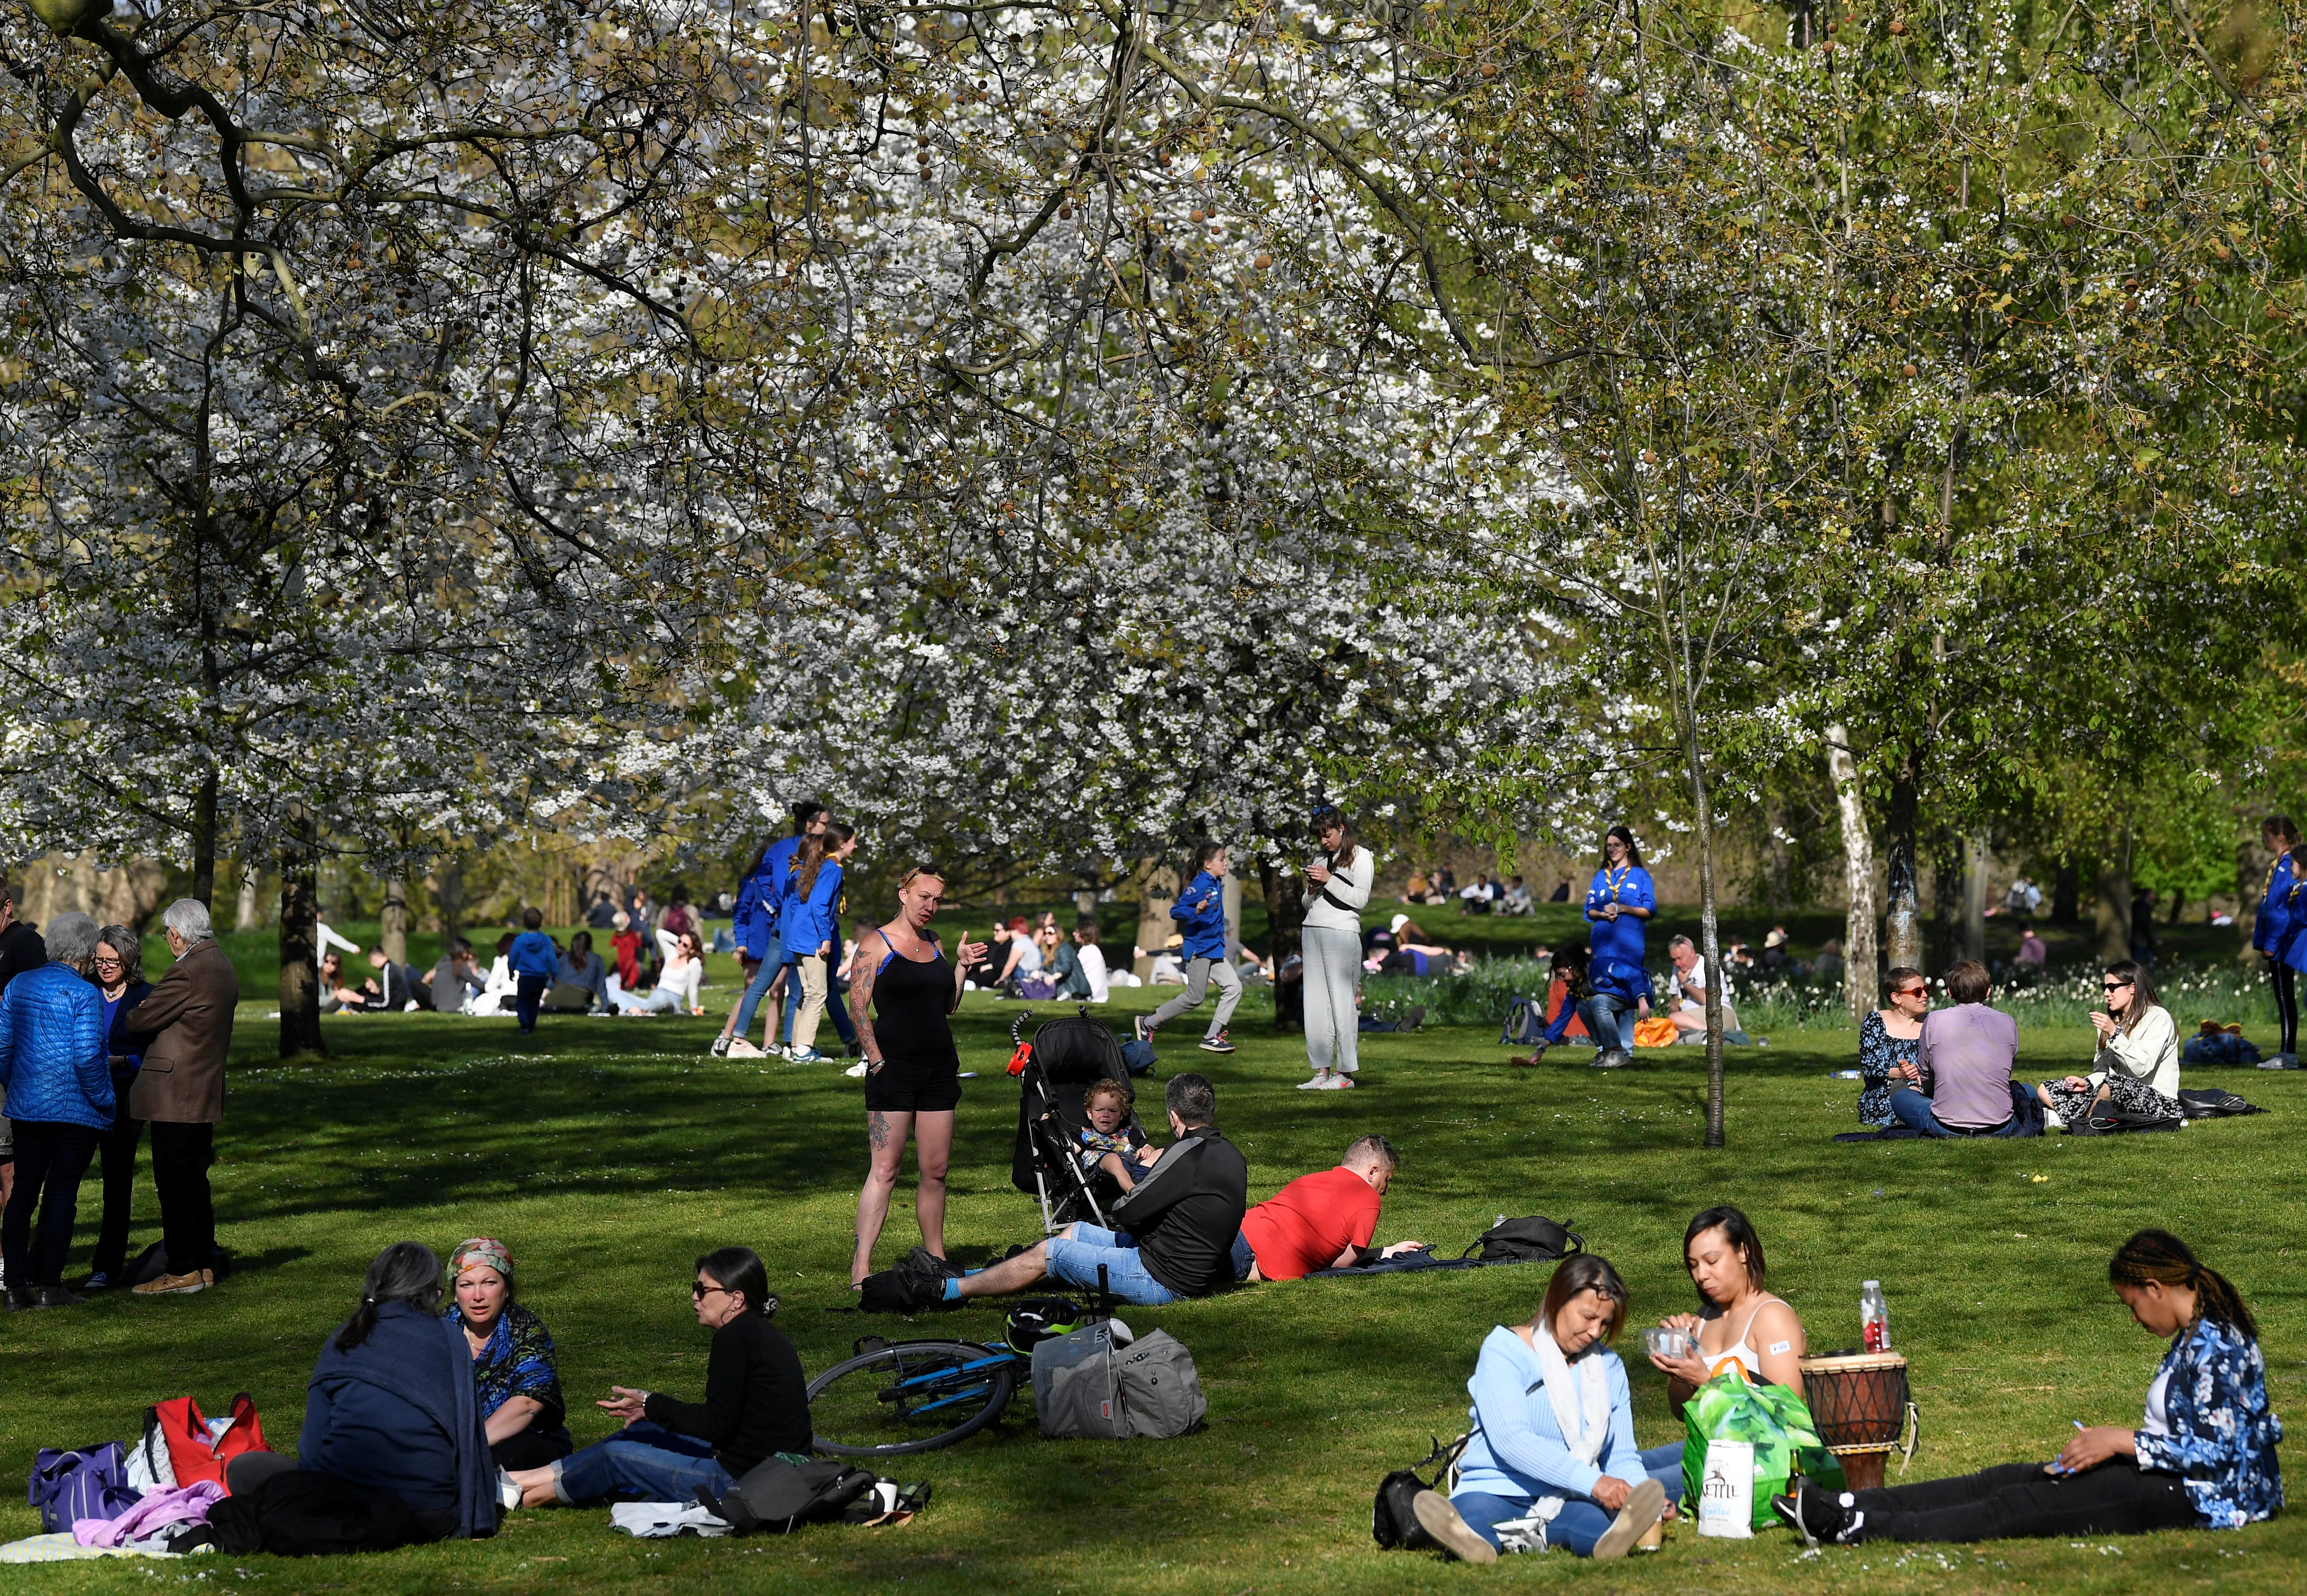 People relax in the sunshine, as lockdown restrictions are eased amidst the spread of the coronavirus disease (COVID-19) pandemic in St. James's Park, London, Britain, April 24, 2021. REUTERS/Toby Melville